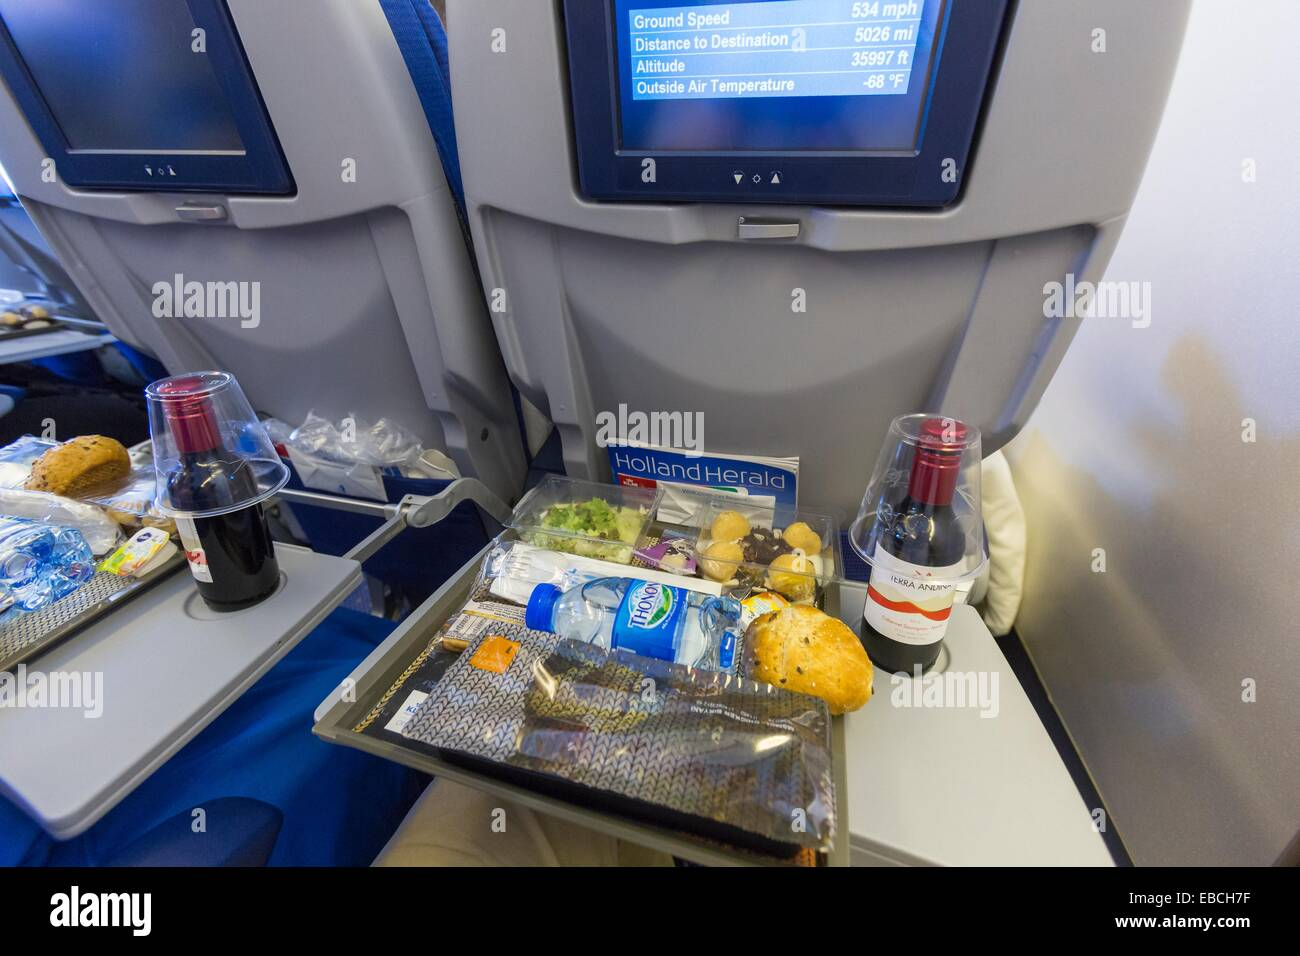 Lunch in Economy Class on board of a commercial airliner - Stock Image